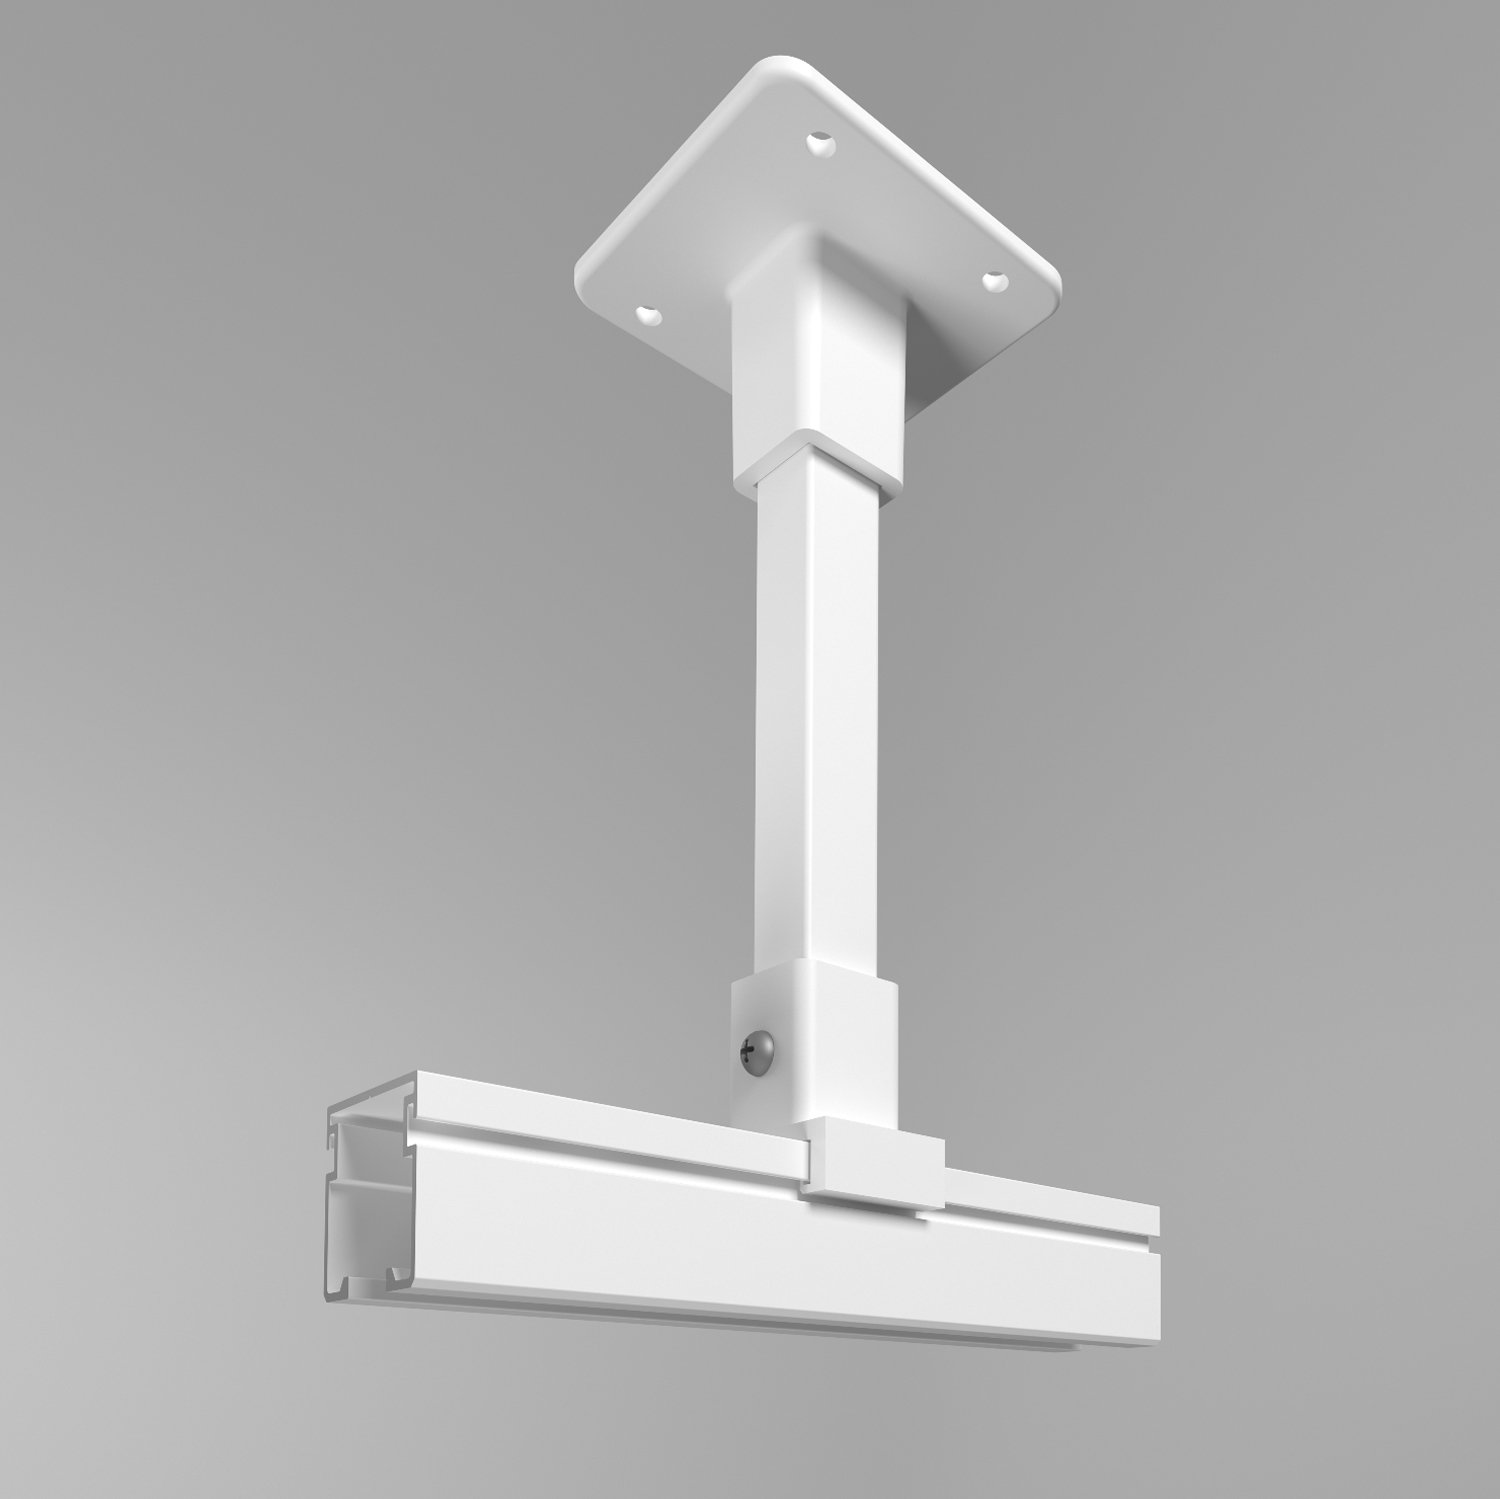 Ultra Cube cubicle curtain track hard ceiling support bracket